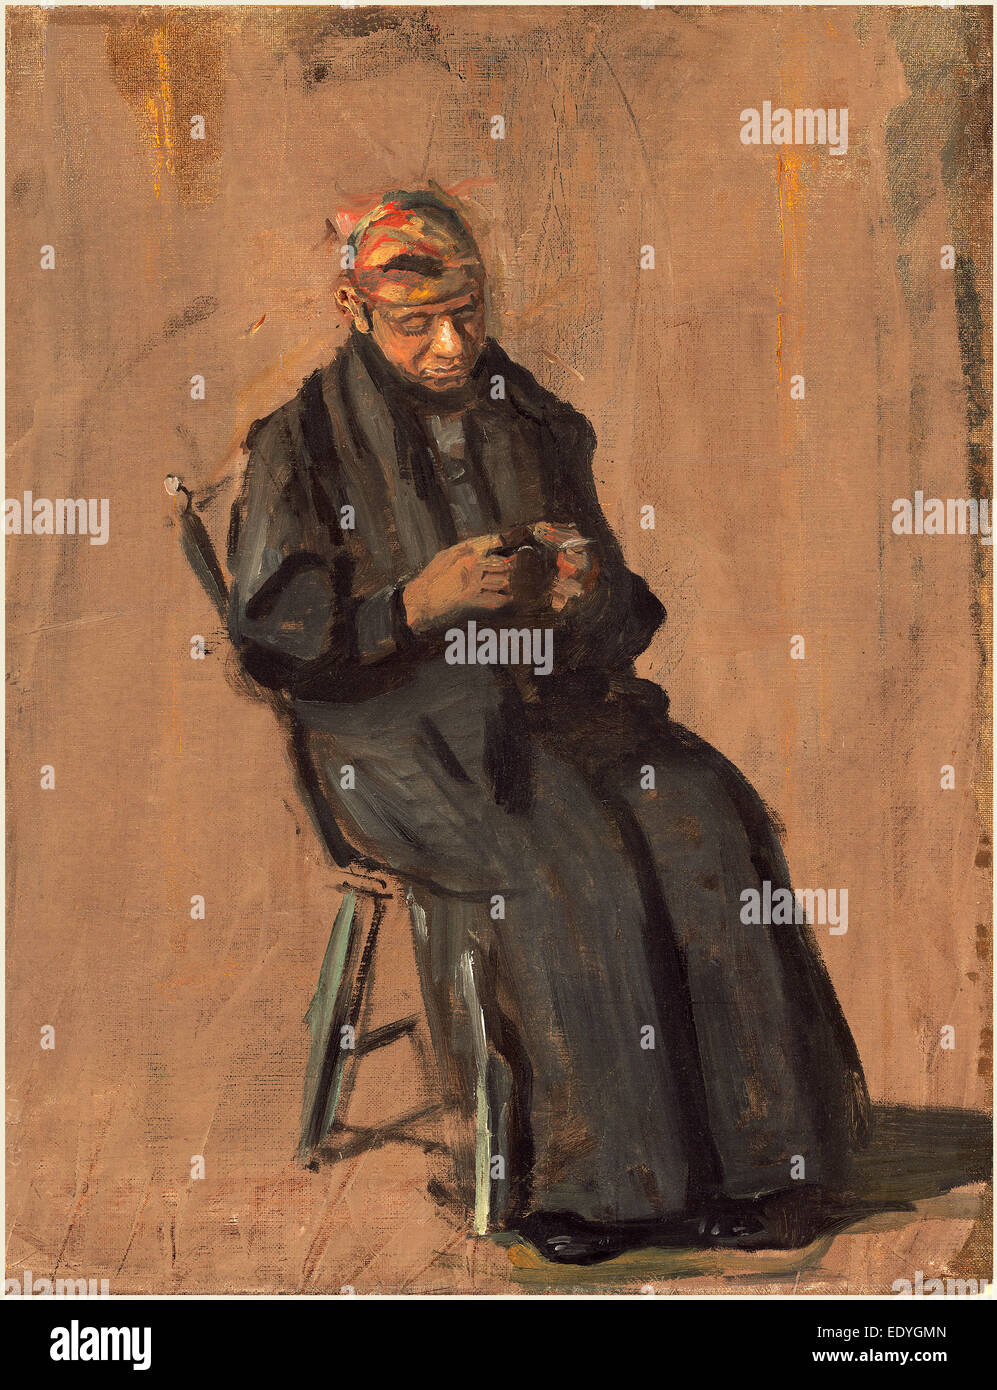 Thomas Eakins, The Chaperone, American, 1844-1916, c. 1908, oil on canvas - Stock Image